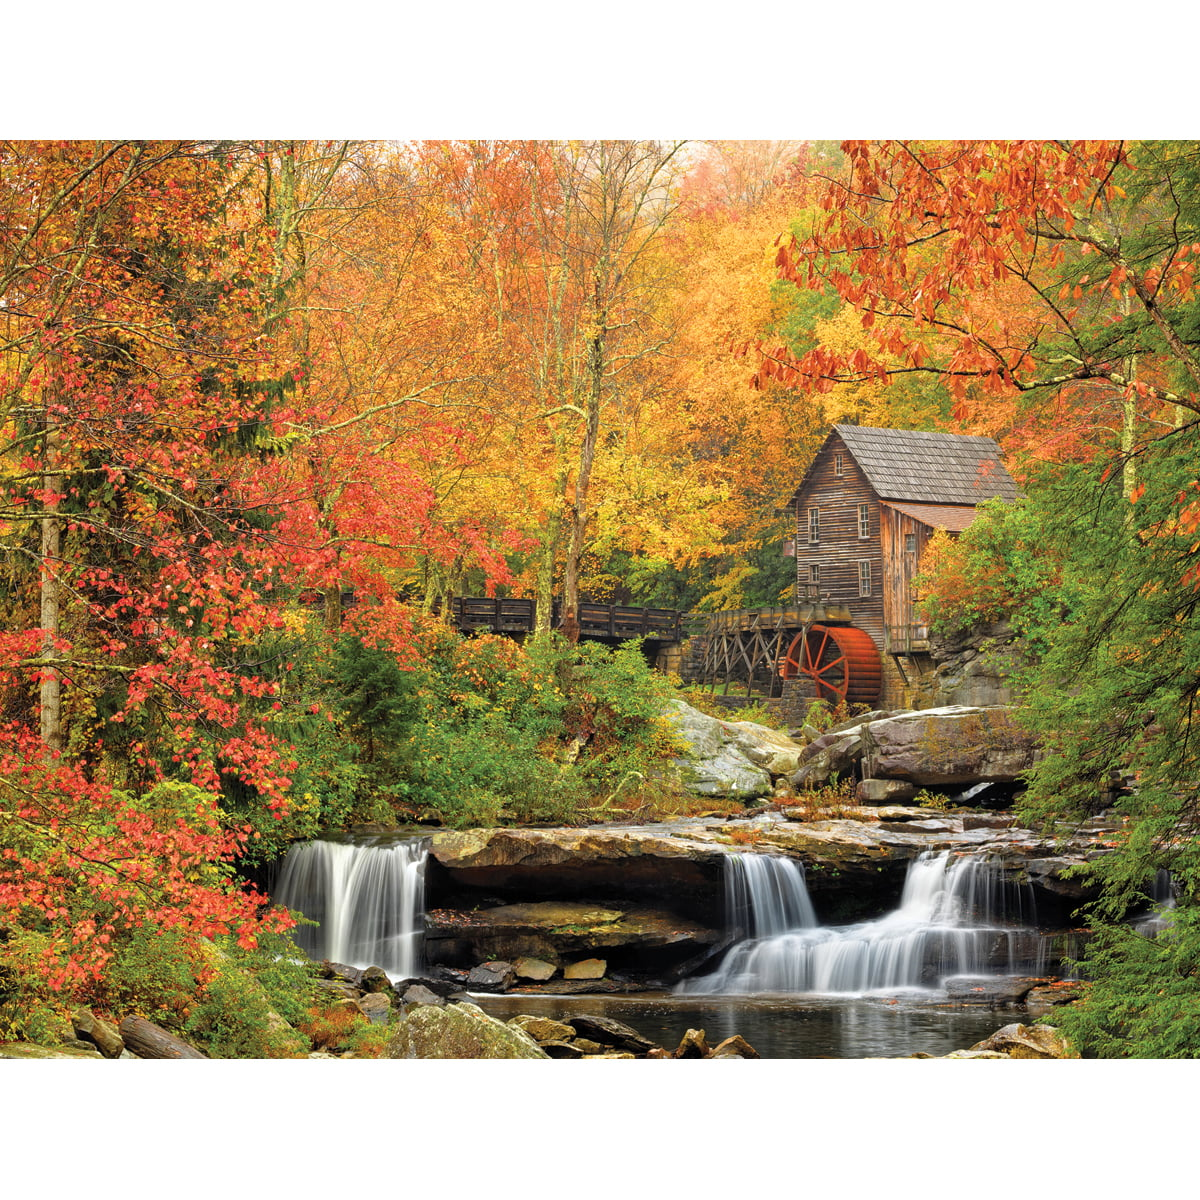 White Mountain Puzzles Old Grist Mill Puzzle, 1000 Pieces by White Mountain Puzzles